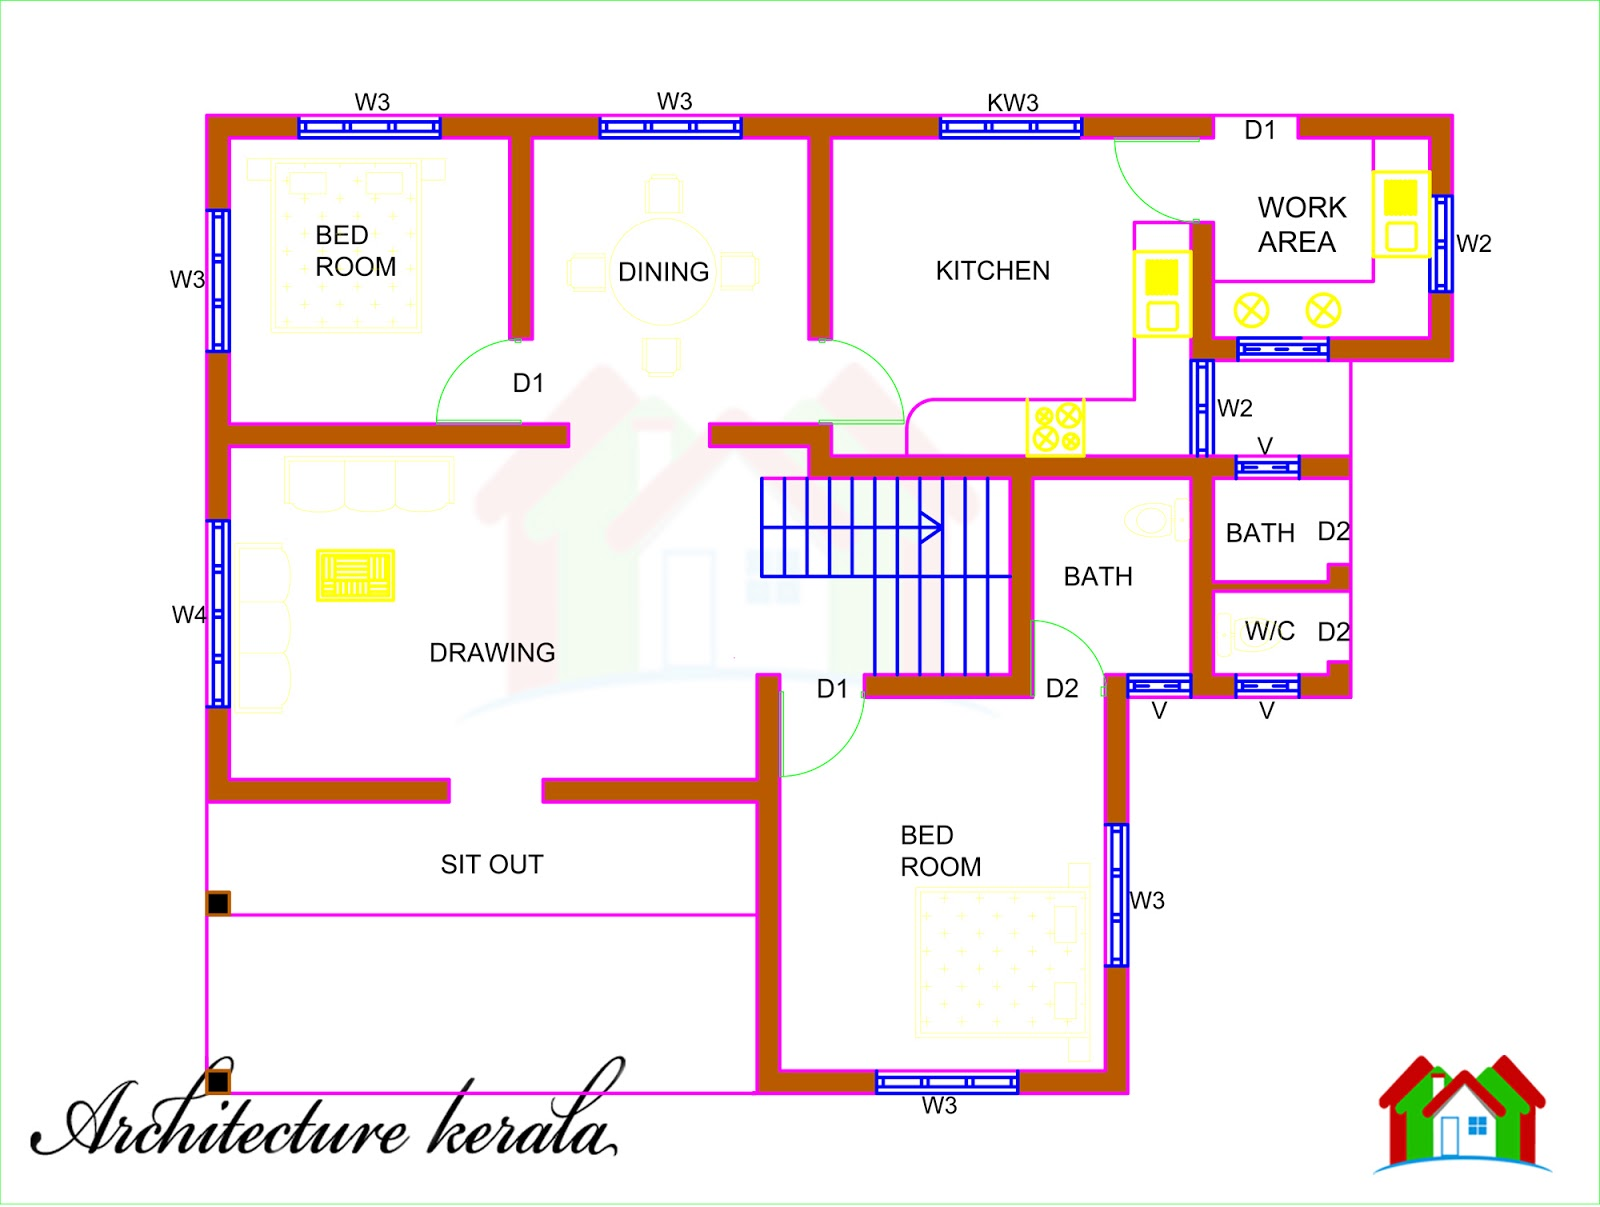 Architecture kerala 5 bedroom house plan and its for 5 bedroom house plans